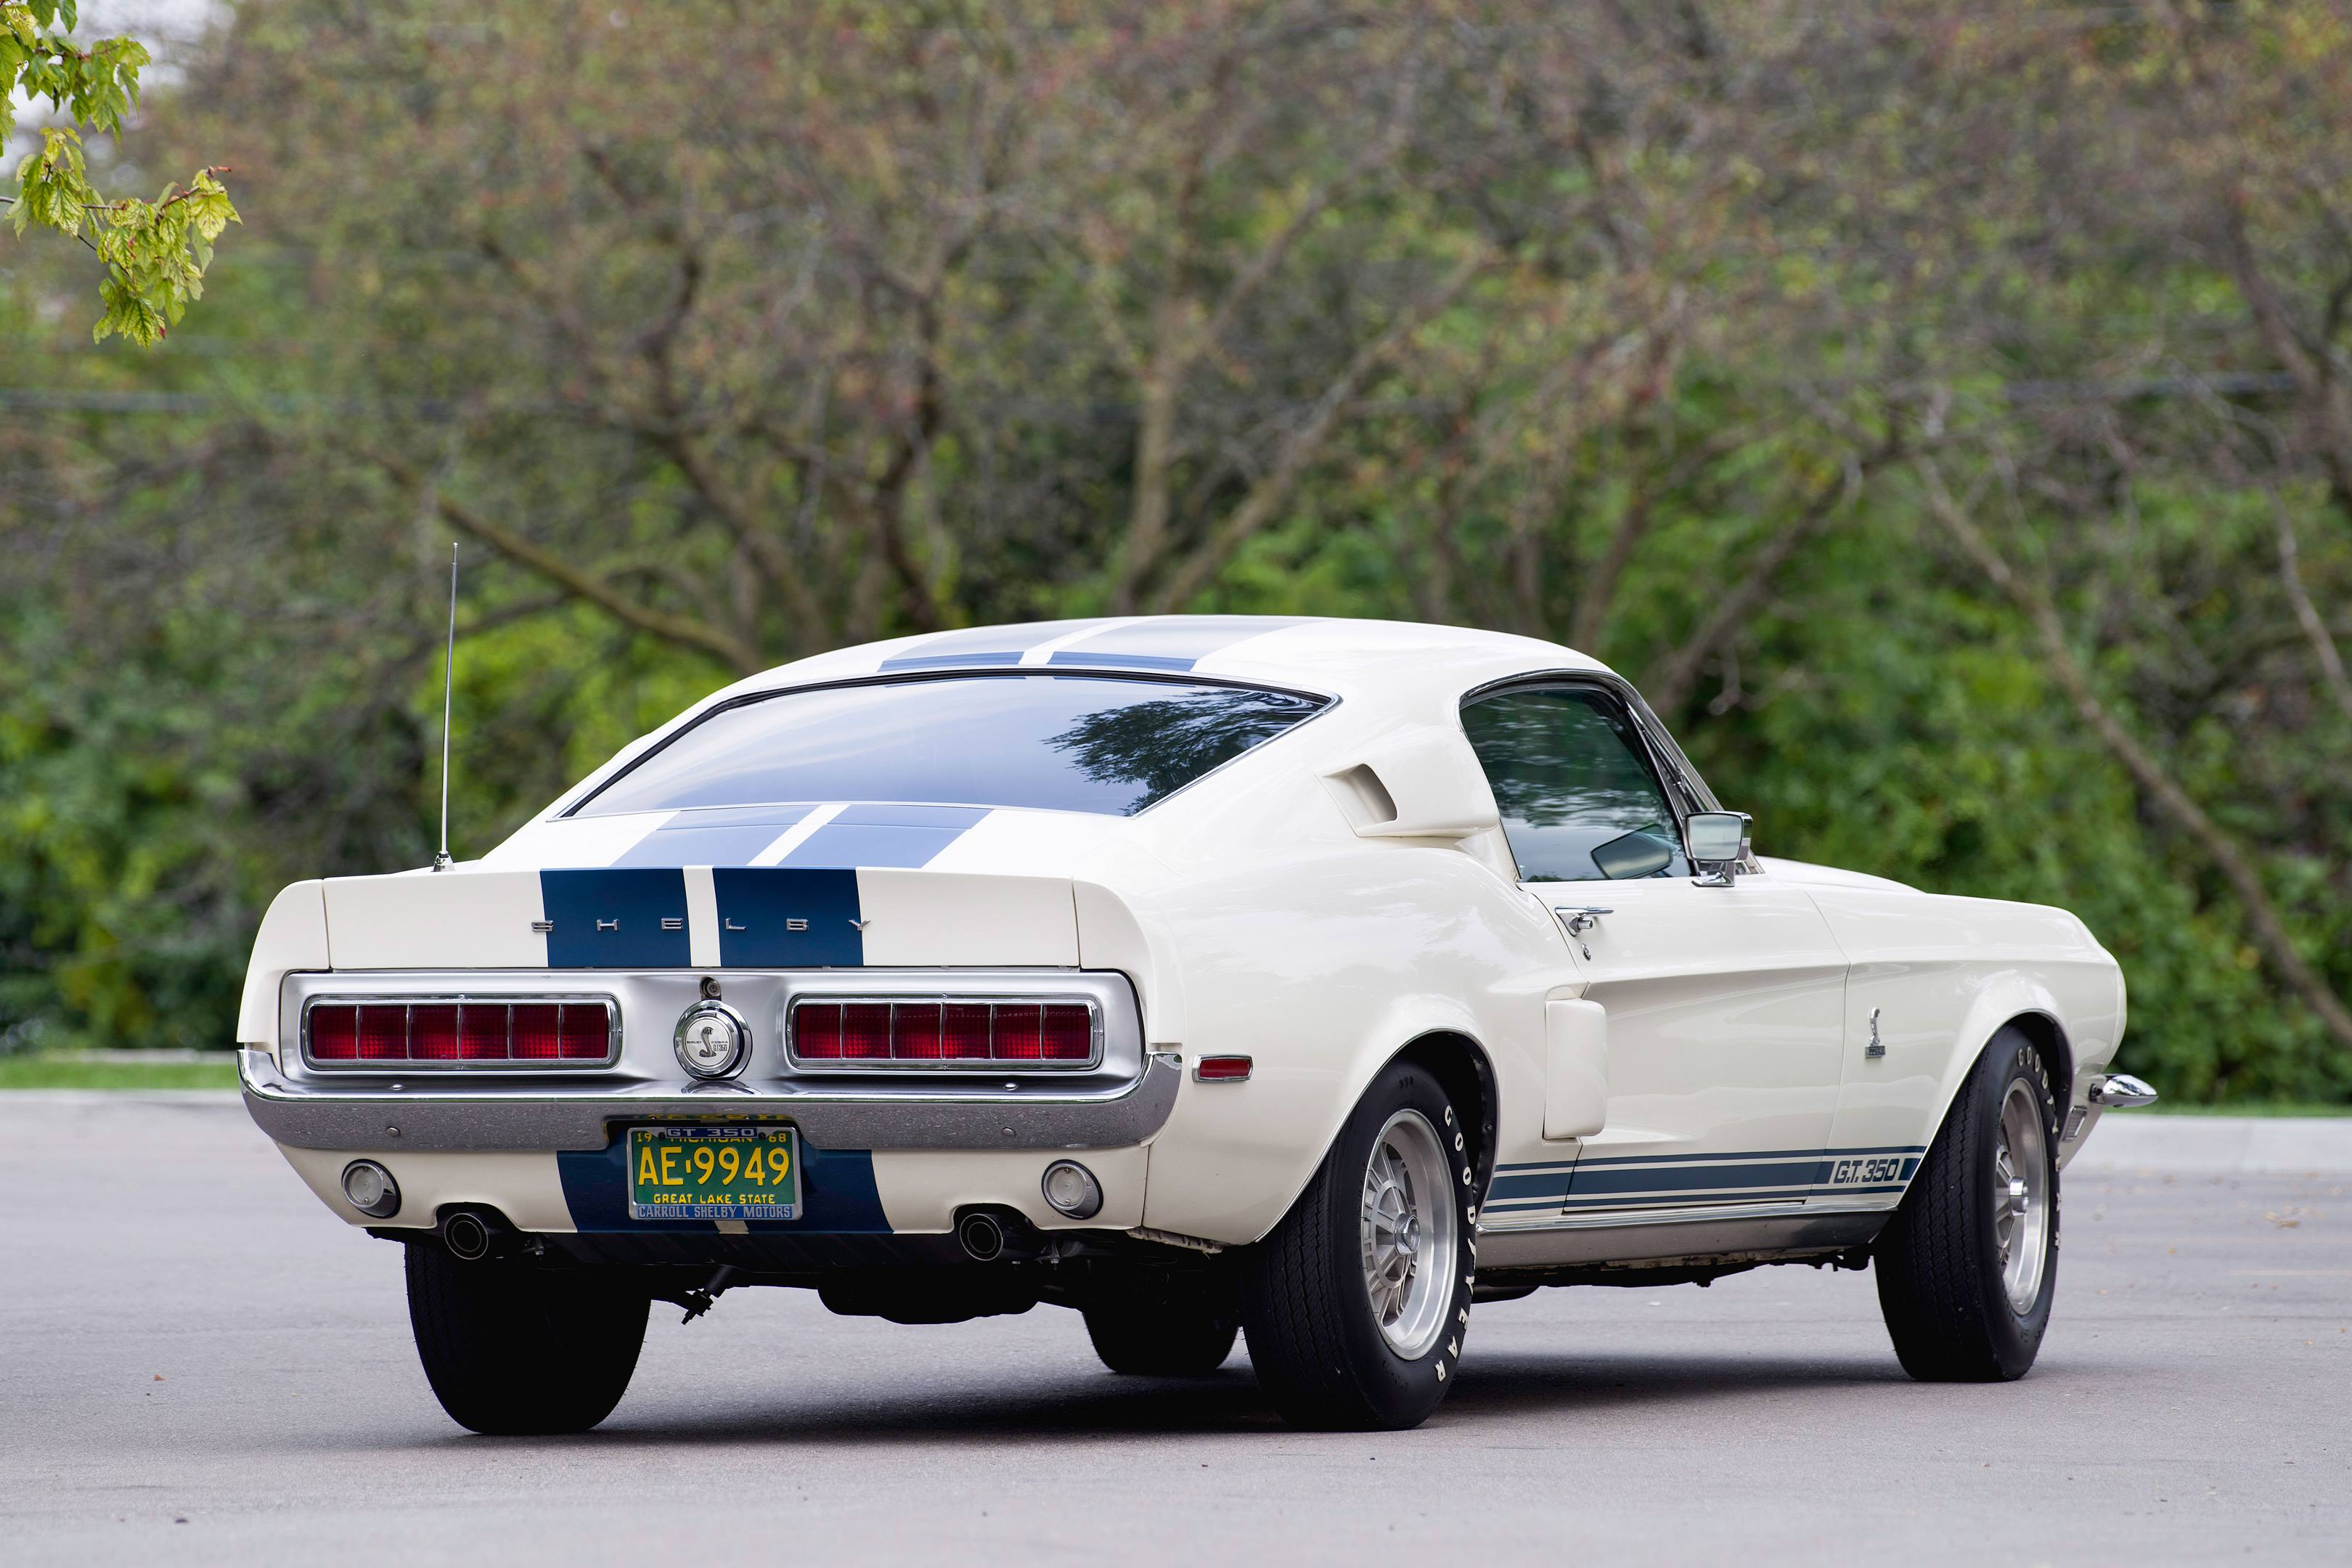 All GT350 scoops are functional. Lest anyone not get the message as the car pulls away, the Shelby name is prominently visible from behind.